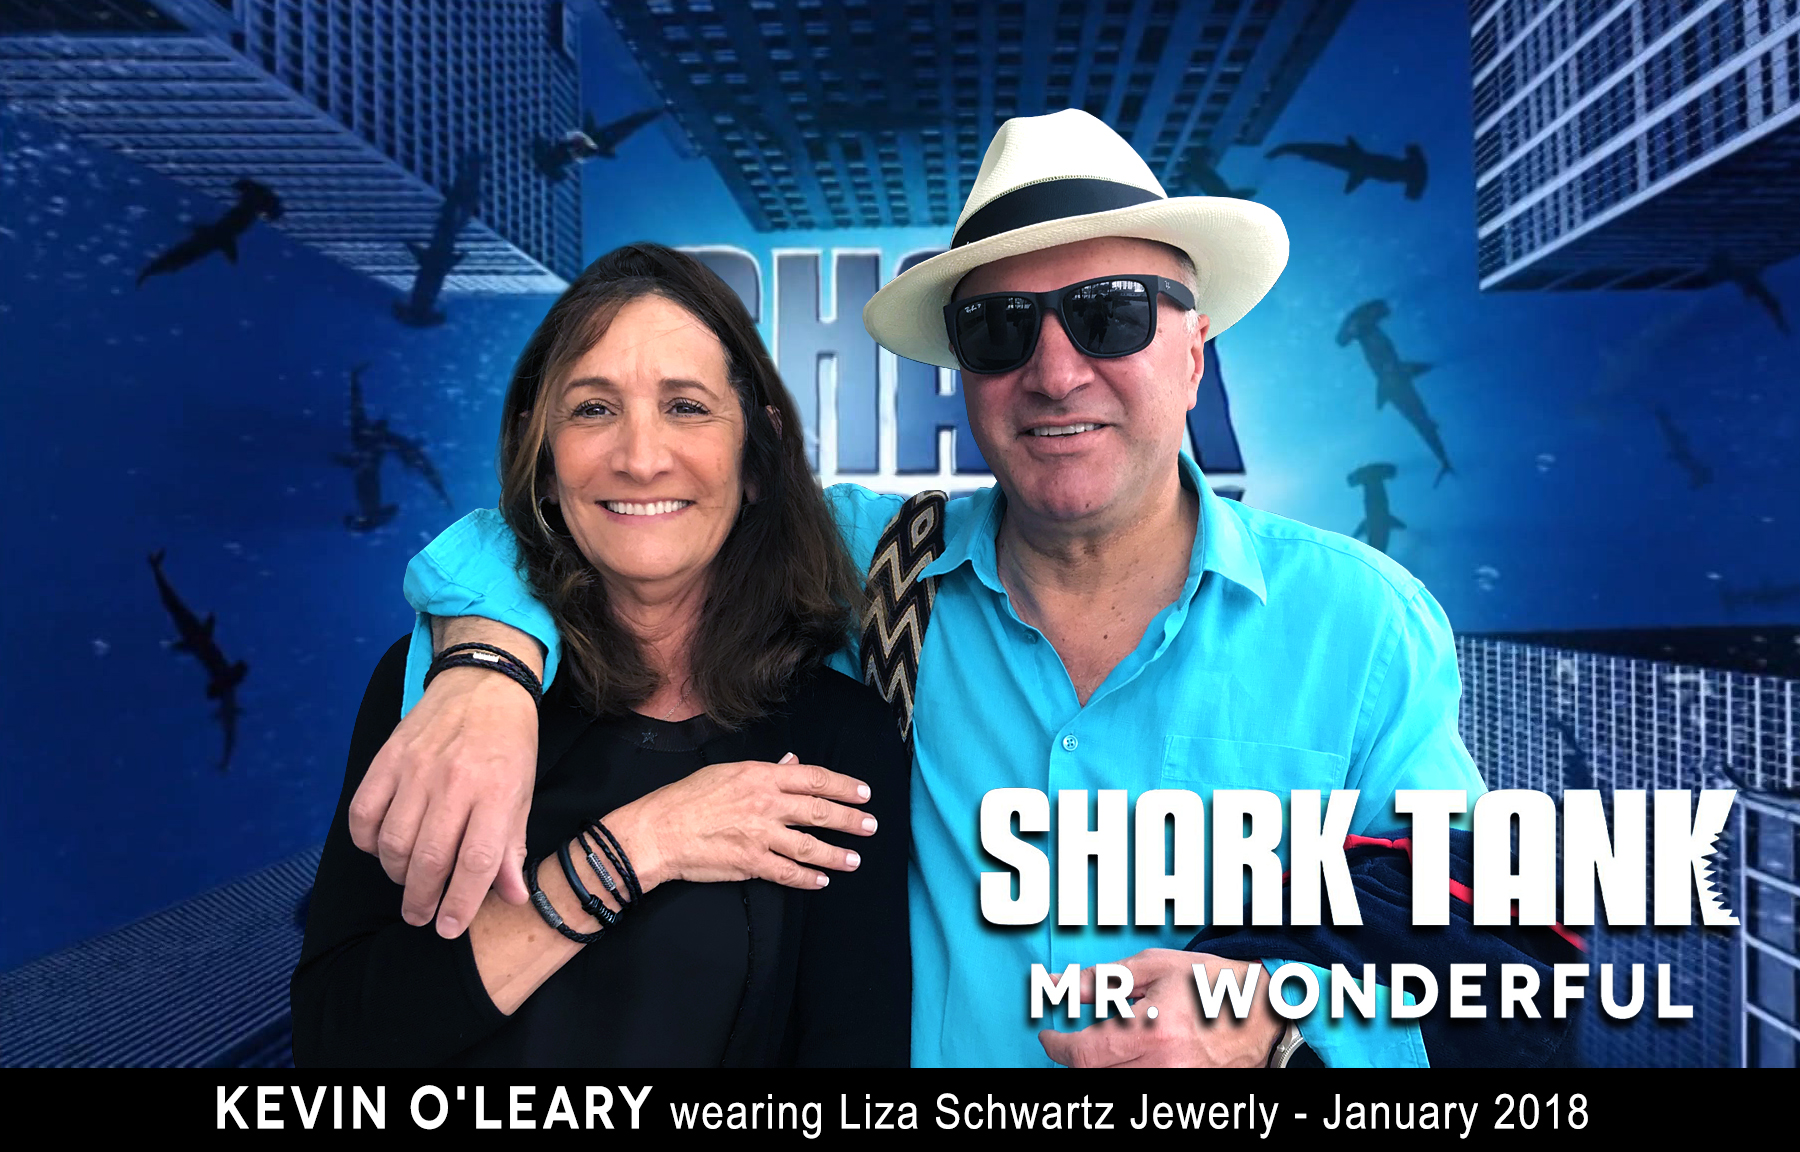 lizapress-mr-wonderful-shark-tank-celebrity-page.jpg